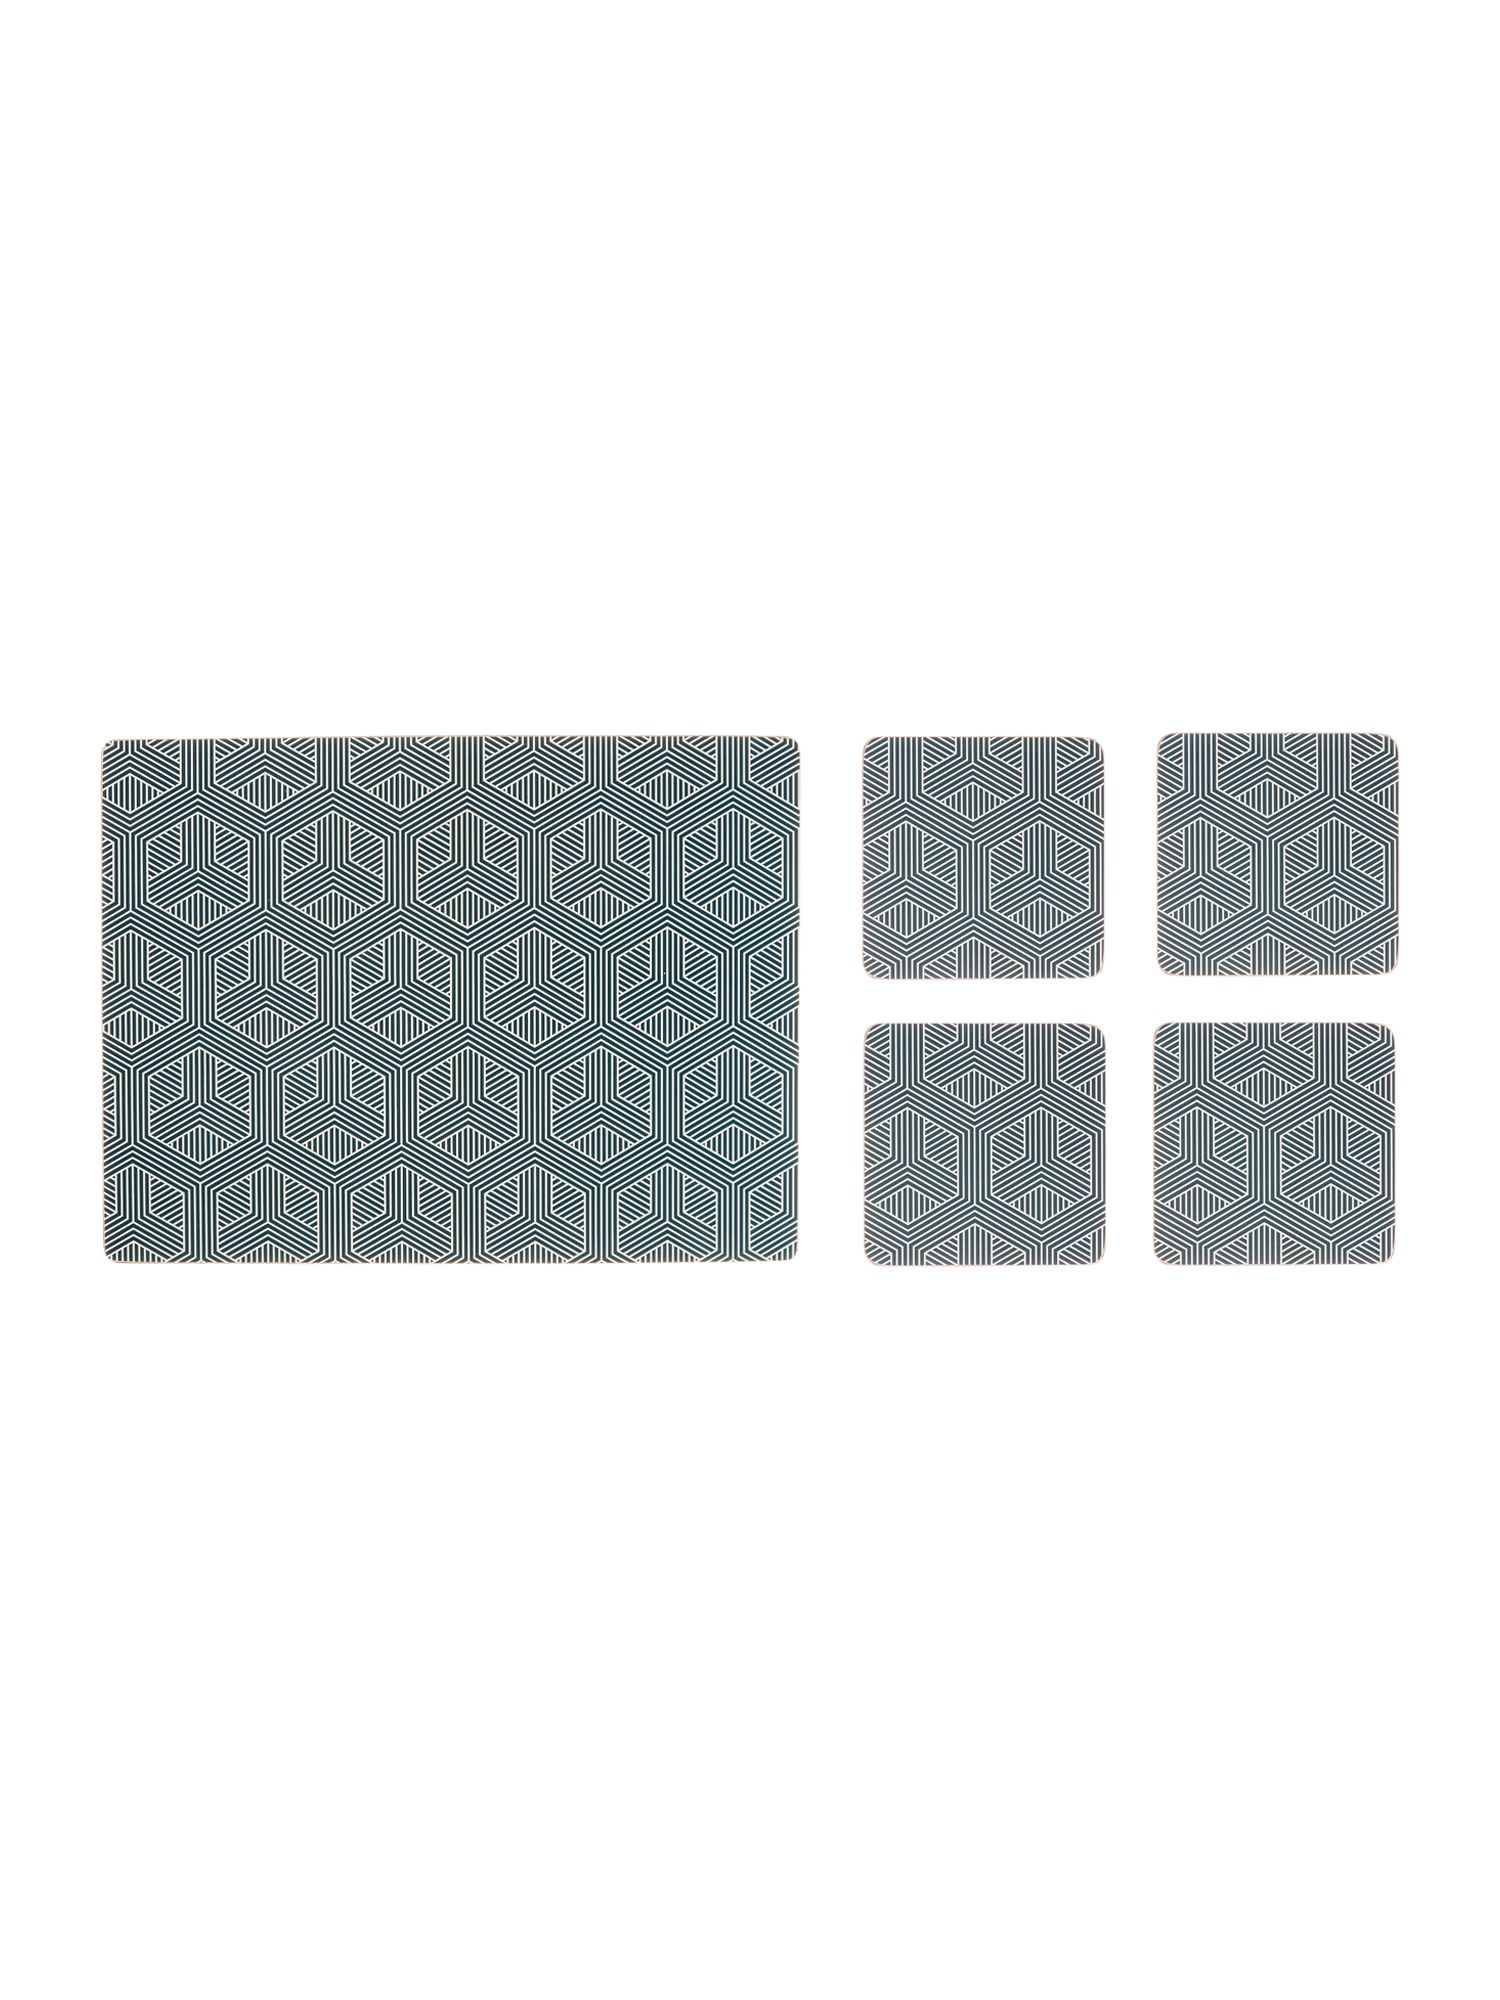 House of fraser green vase - Living By Christiane Lemieux Mai Hexagon Placemats Coasters Set